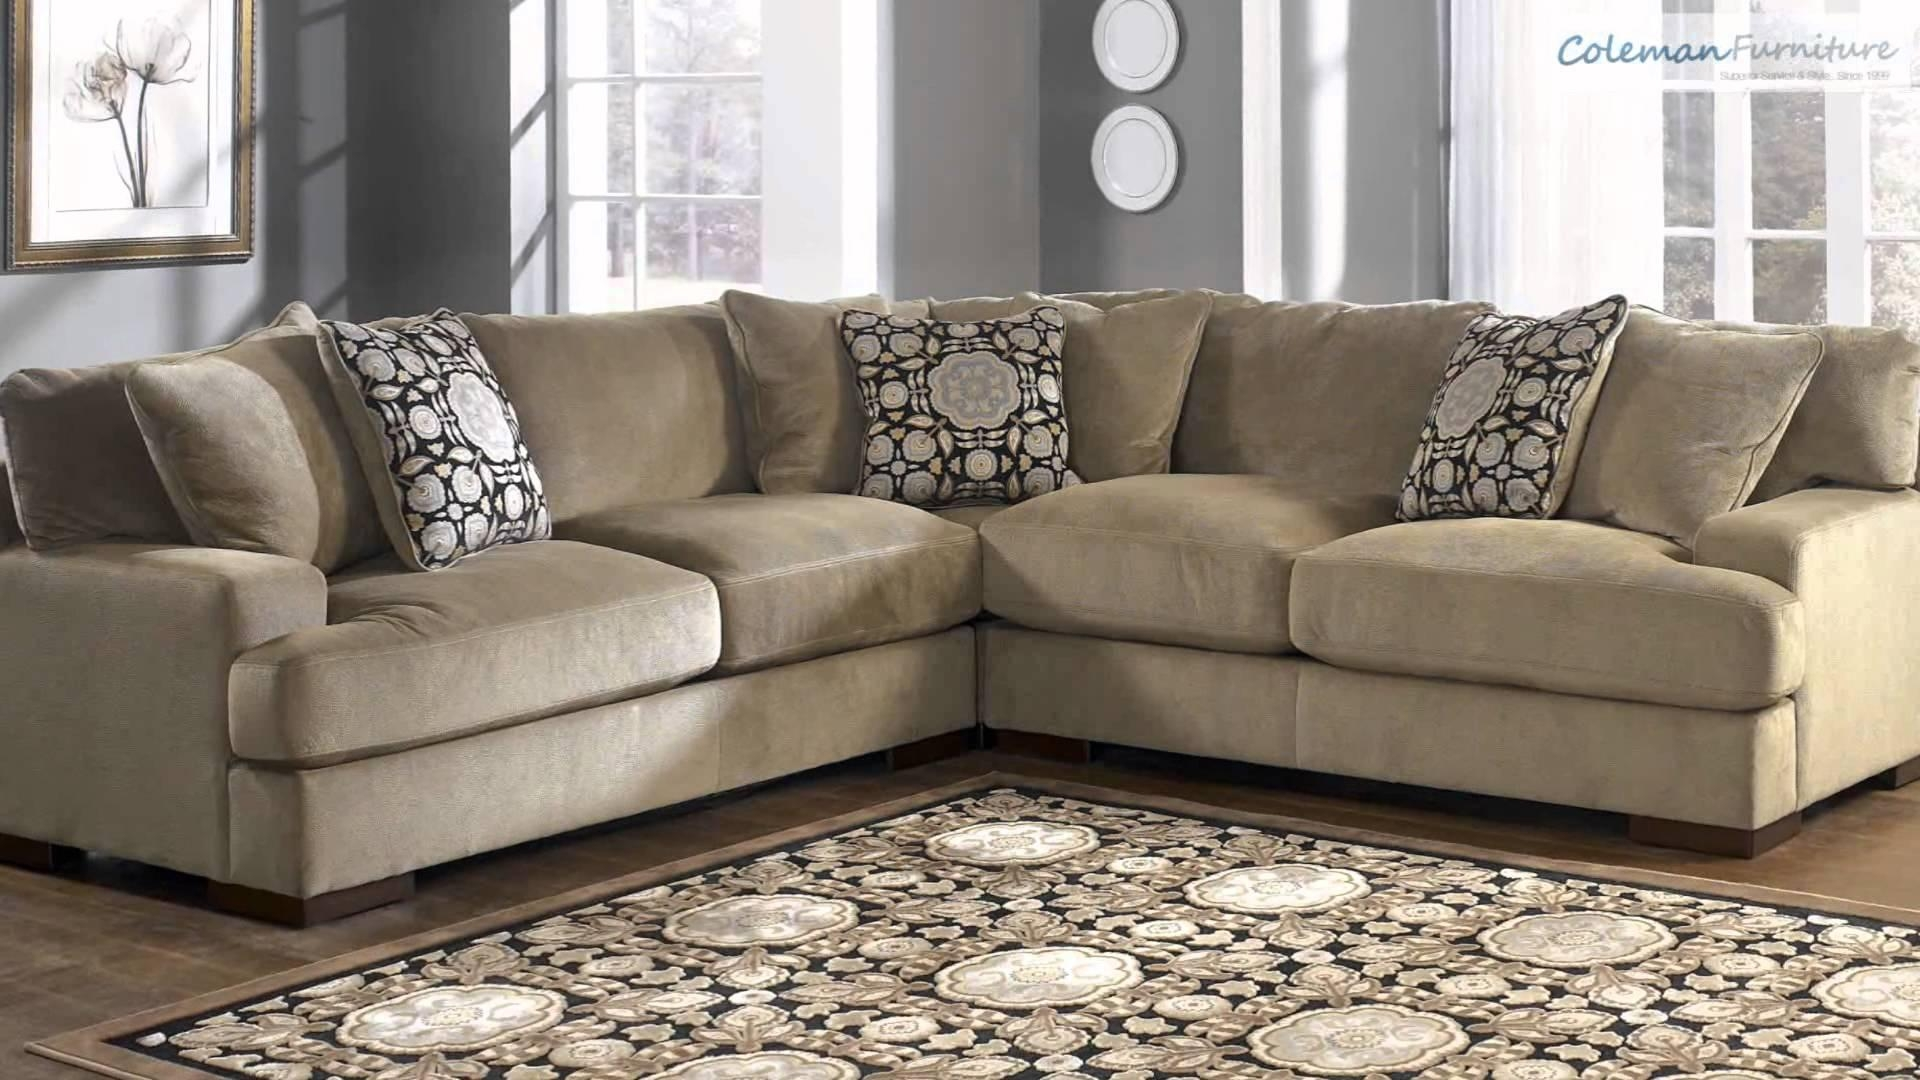 Grenada Mocha Living Room Collection From Signature Design Intended For Ashley Furniture Grenada Sectional (Image 10 of 15)